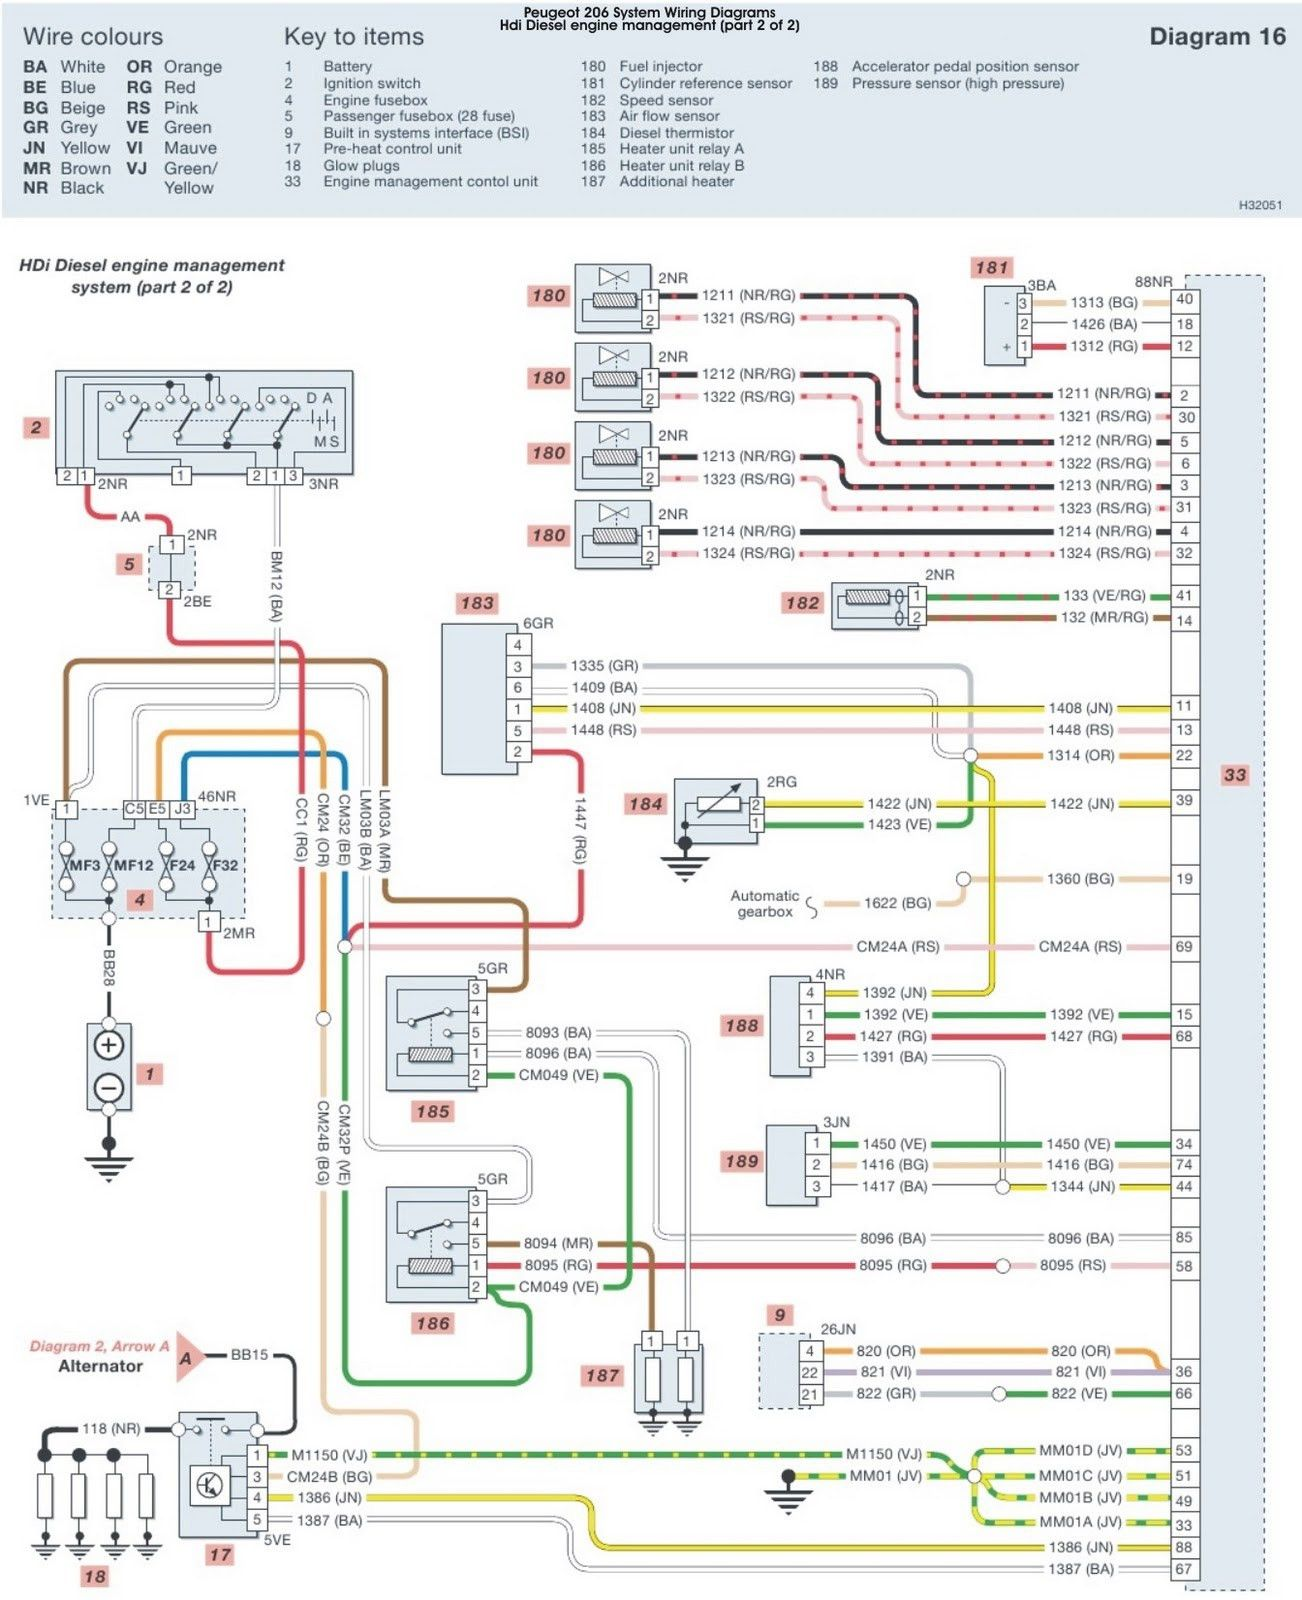 peugeot wiring diagram download wiring diagram fascinating peugeot 607 wiring diagram free download peugeot 607 wiring diagram [ 1302 x 1600 Pixel ]